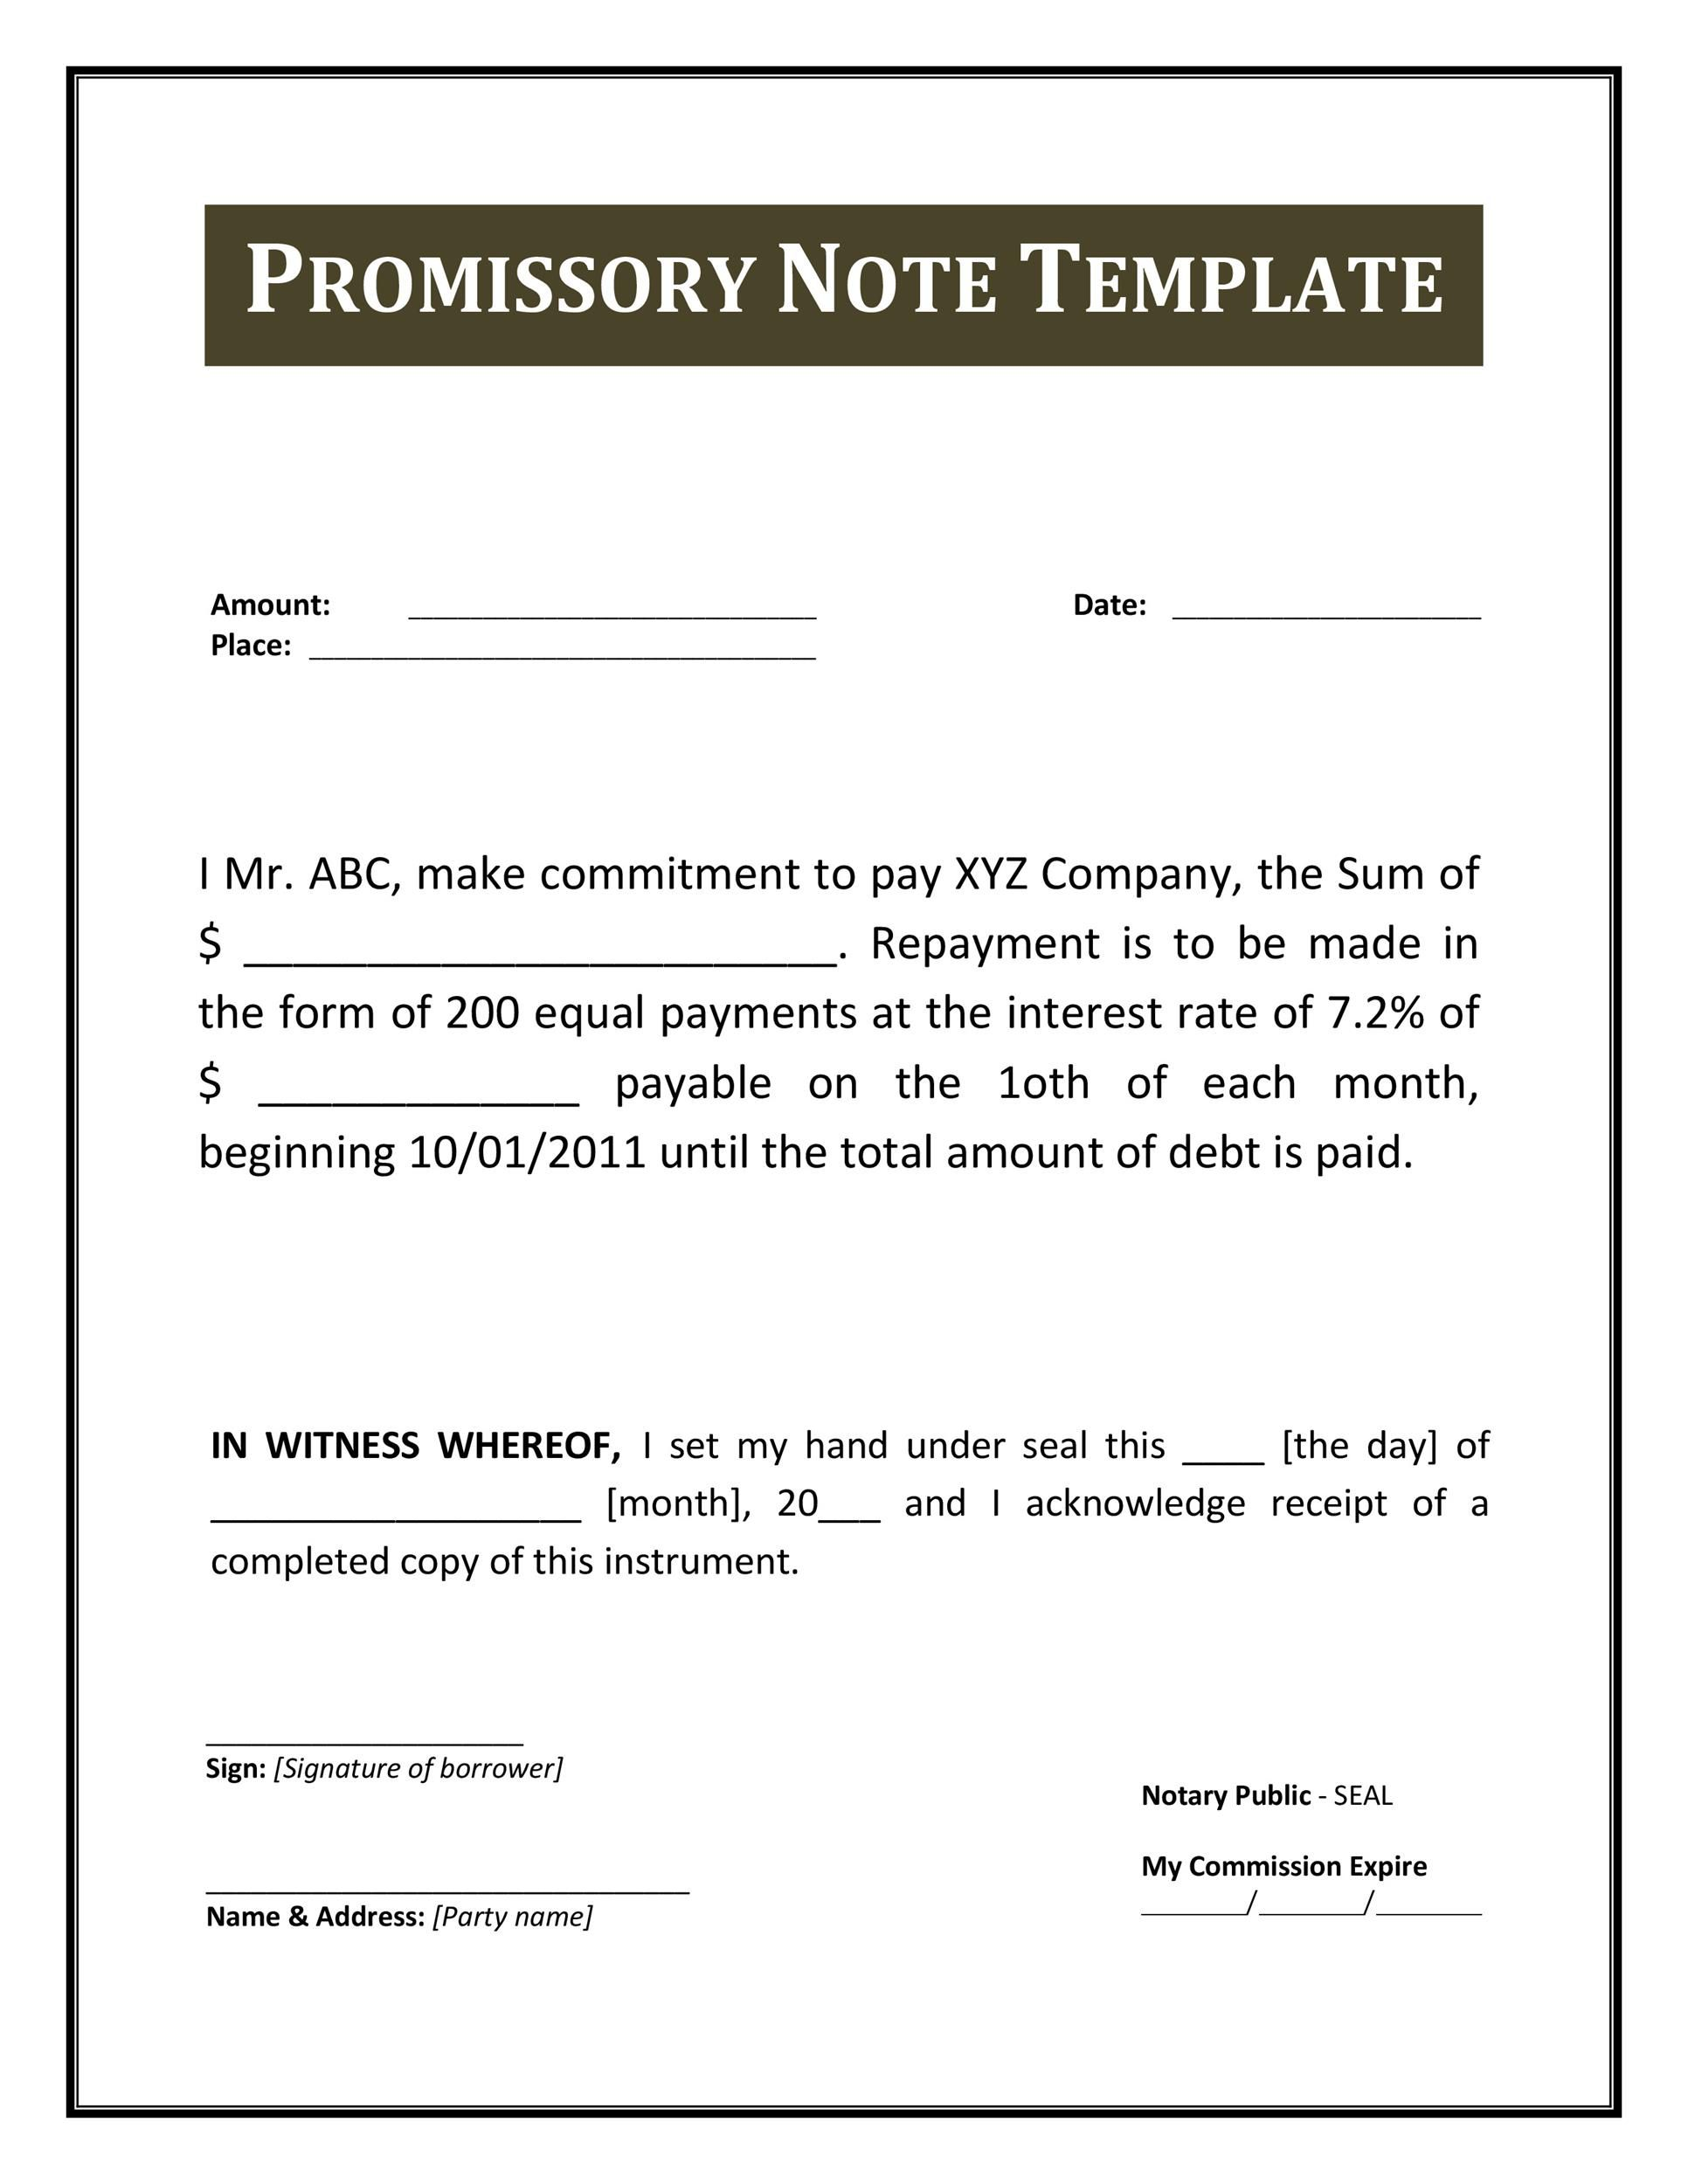 005 Marvelou Loan Promissory Note Template Highest Quality  Family Busines Format For HandFull